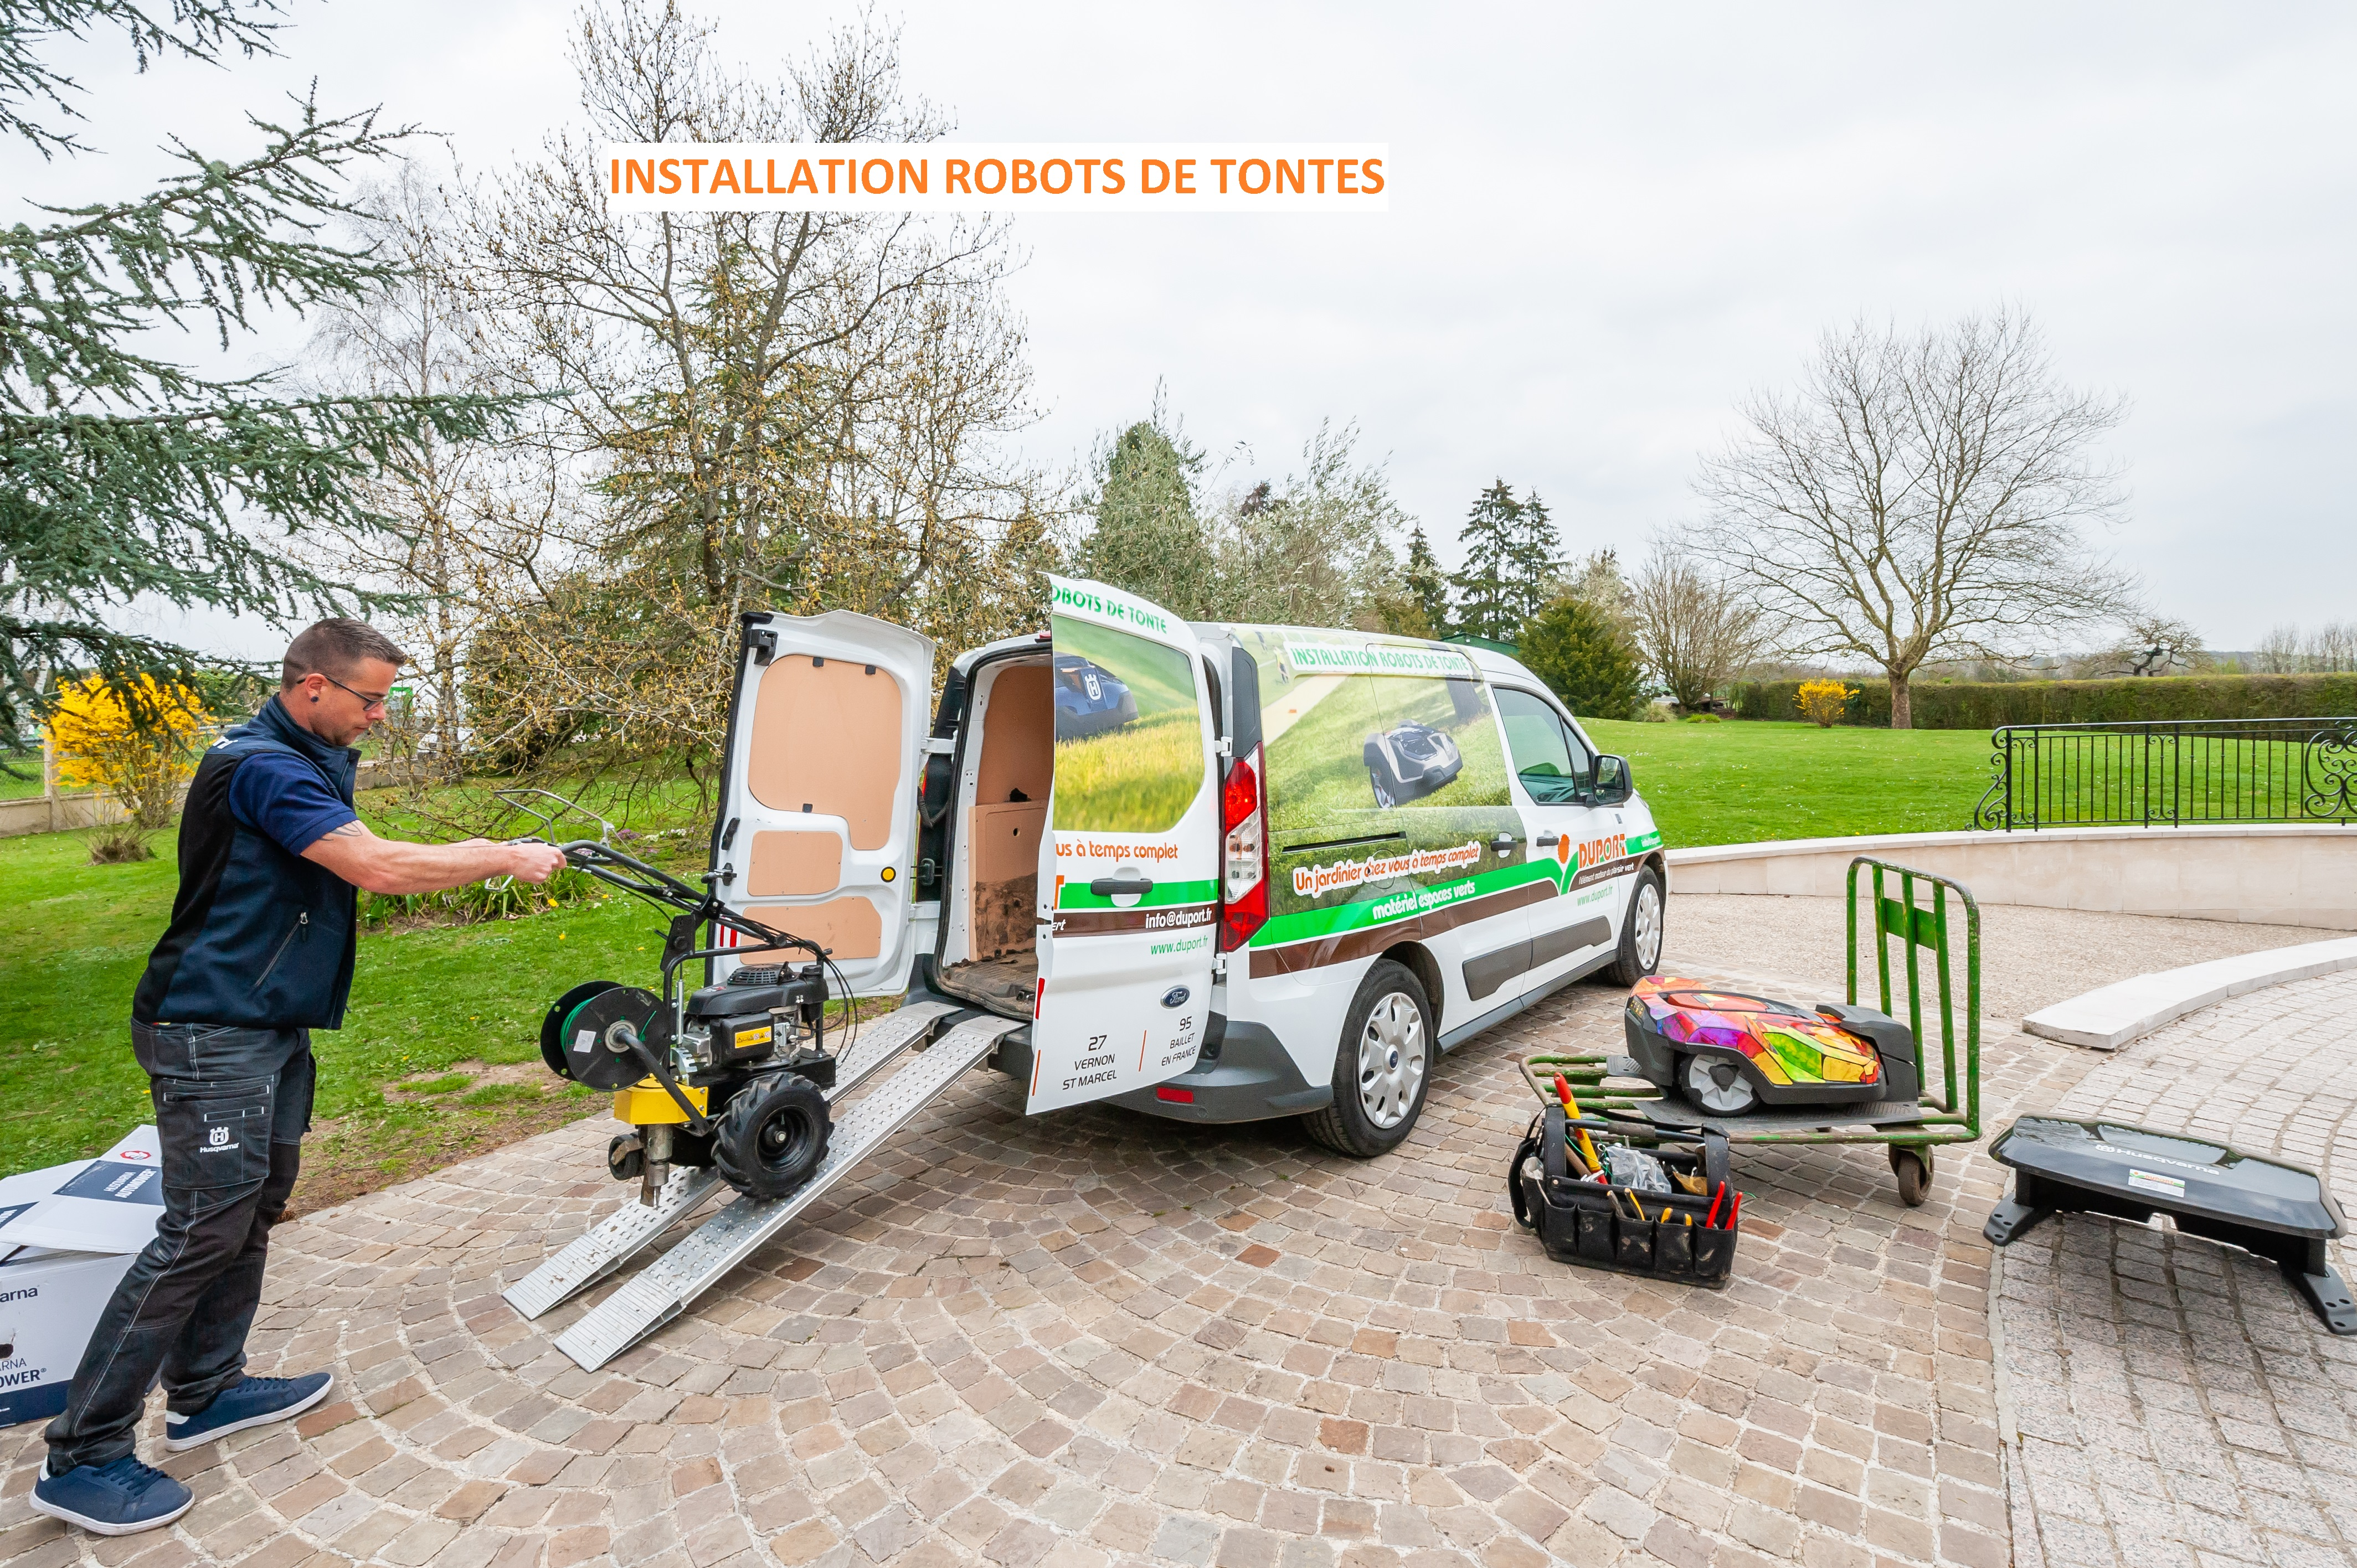 installation robot tonte duport